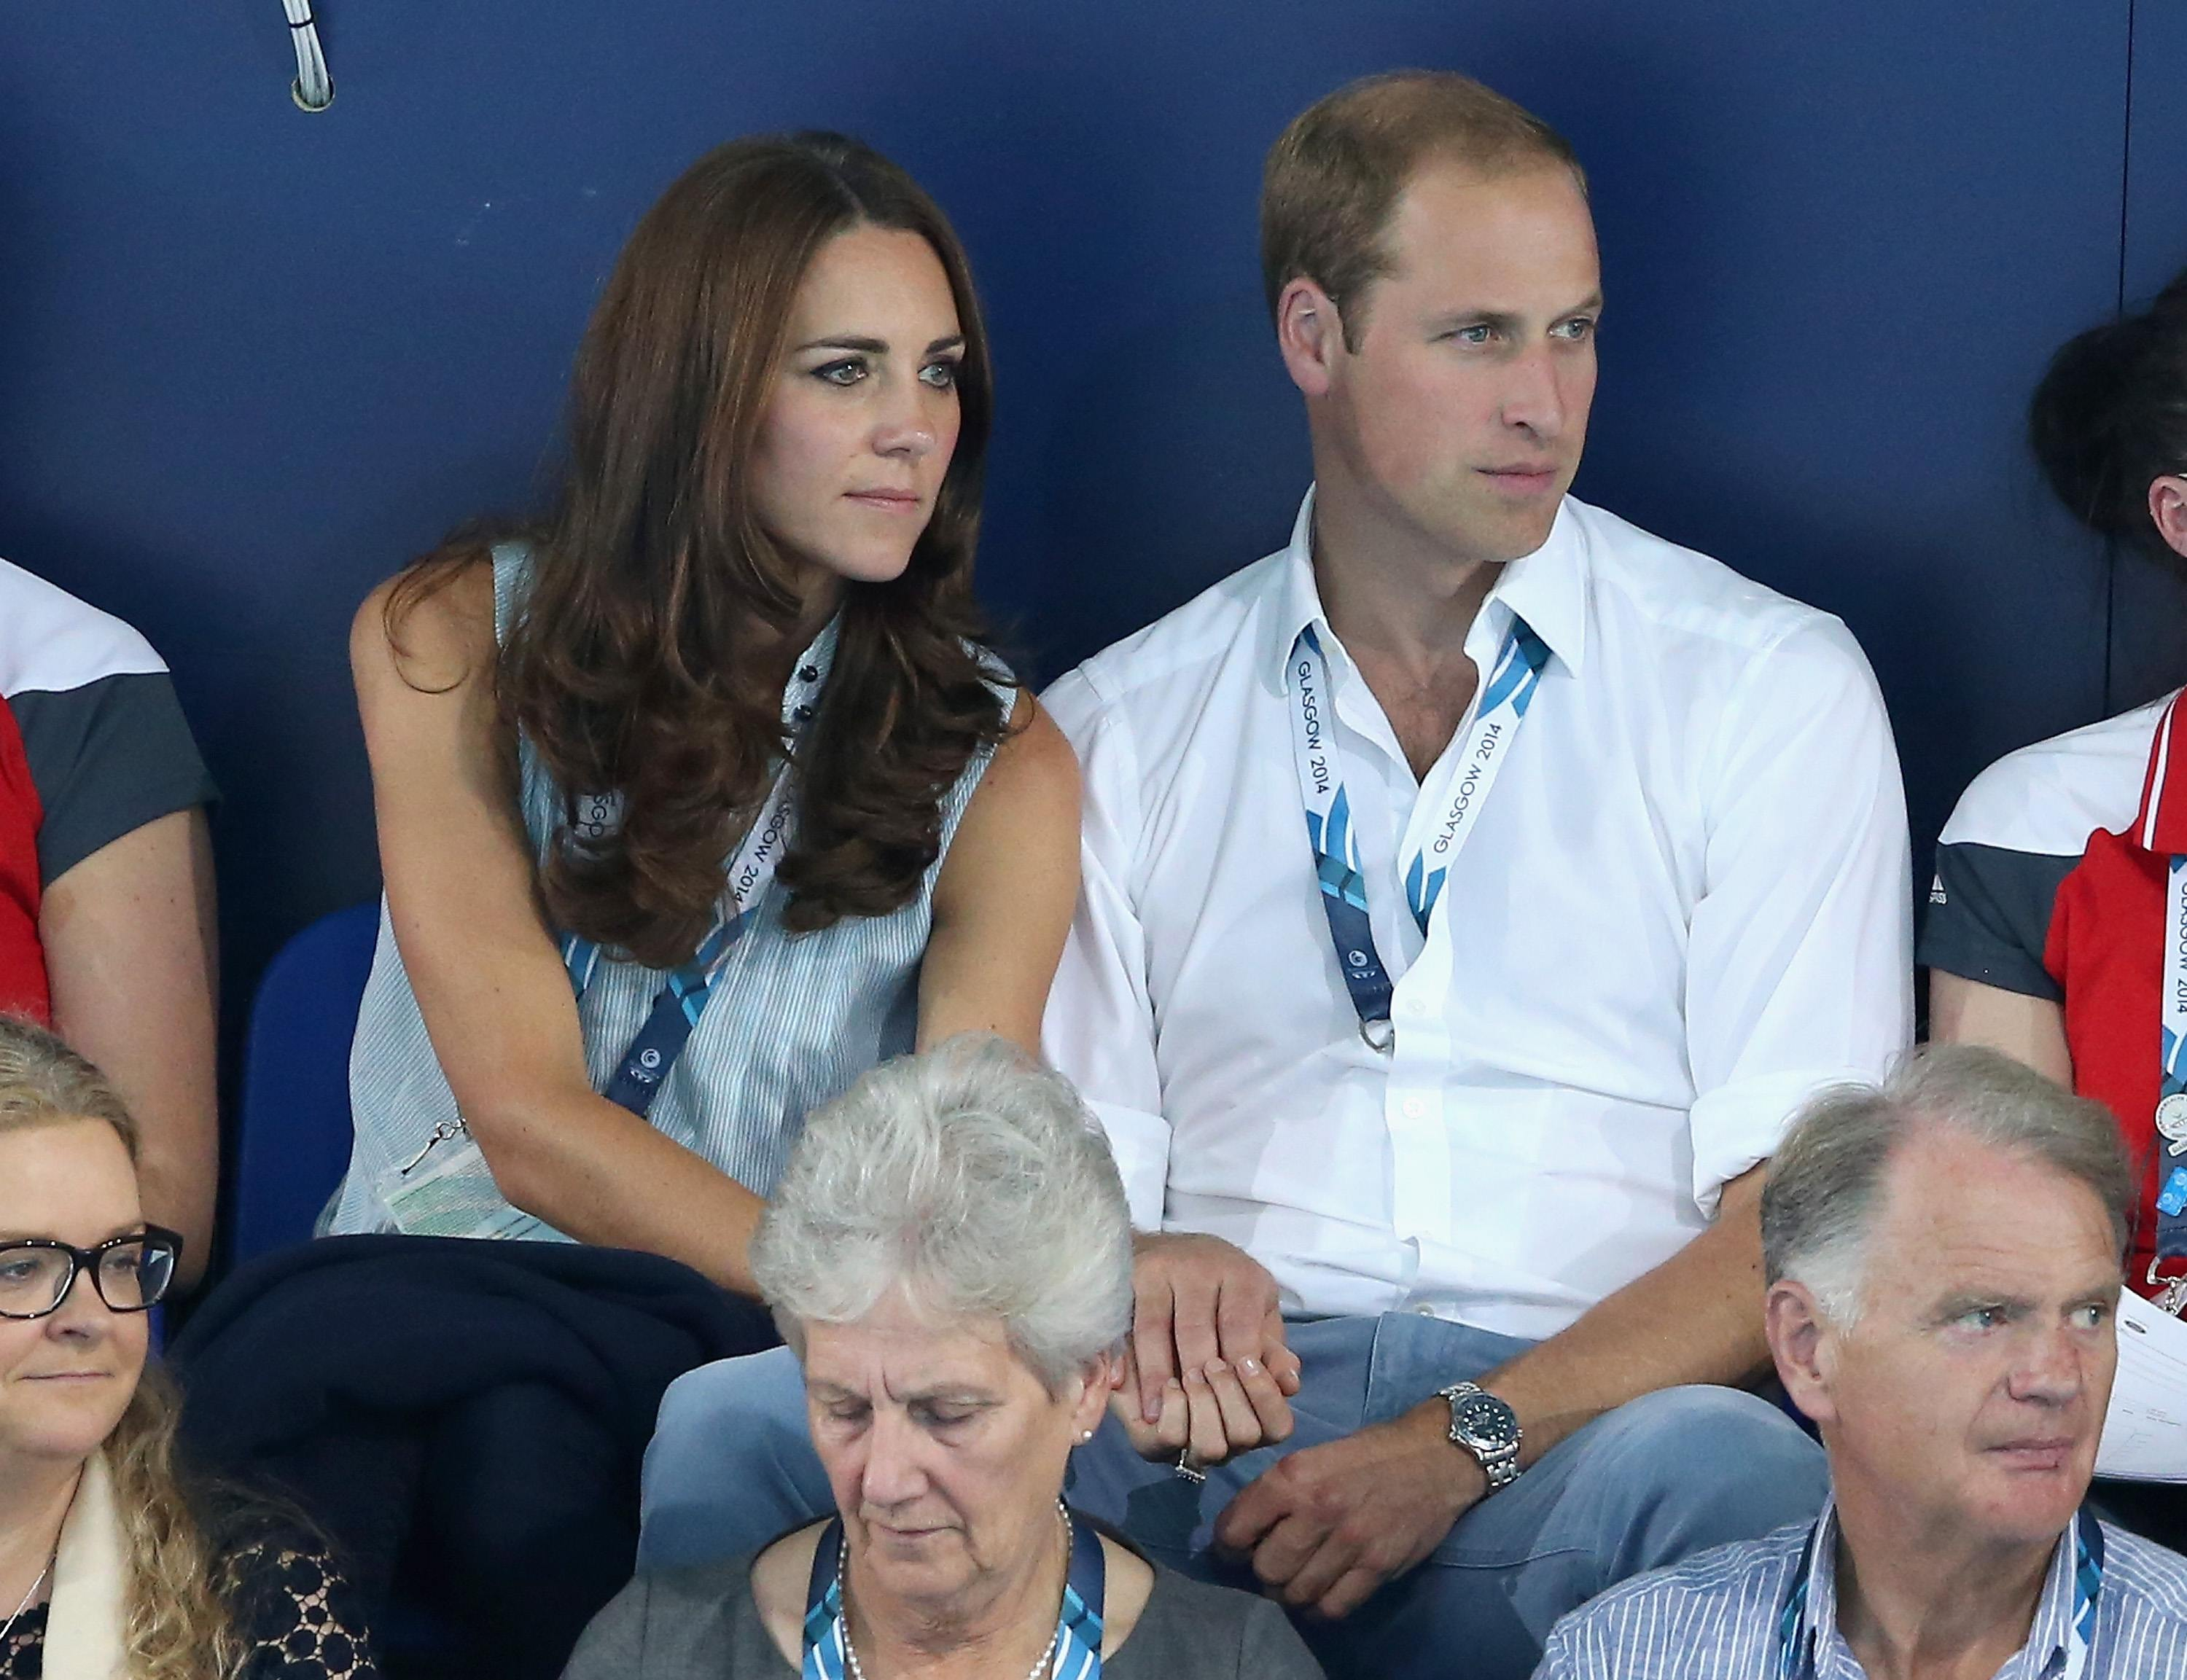 Catherine, Duchess of Cambridge and Prince William, Duke of Cambridge hold hands as they watch the swimming at Tollcross Swimming Centre during the 20th Commonwealth games on July 28, 2014 in Glasgow, Scotland.